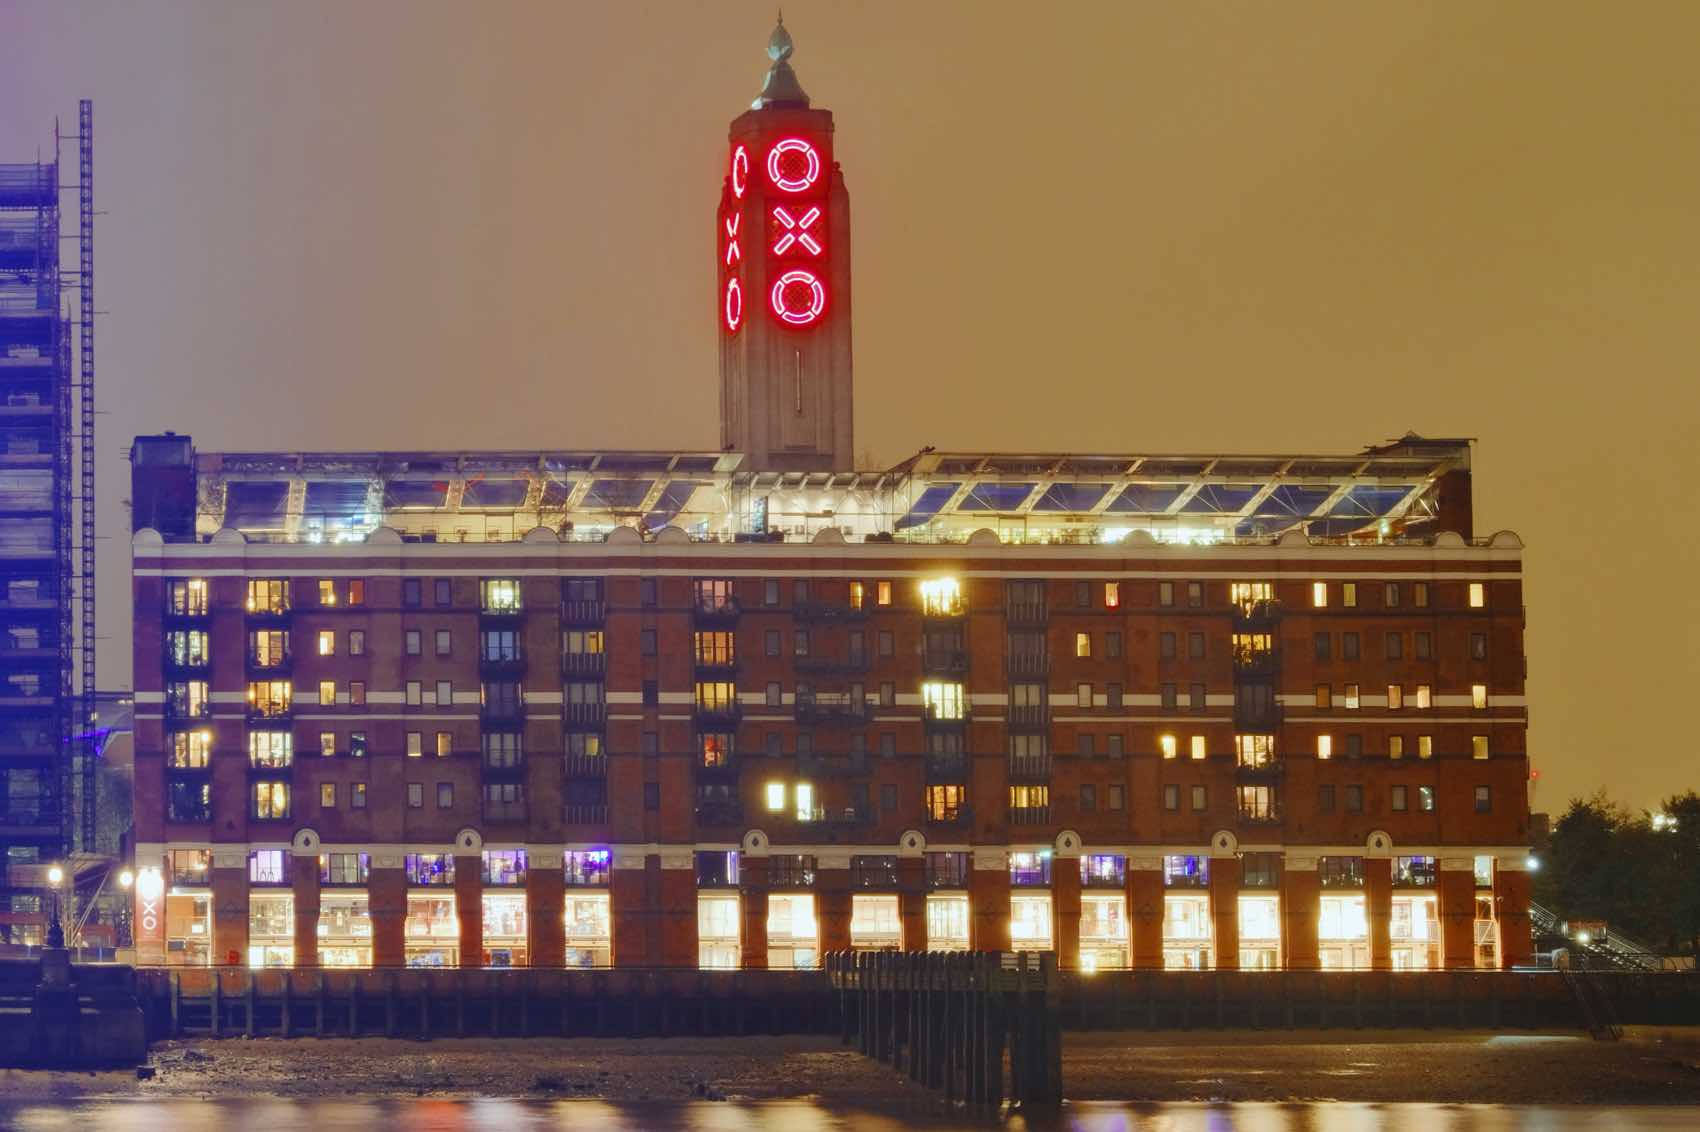 Oxo Tower and the giant letters in three vast windows filled with red glass.